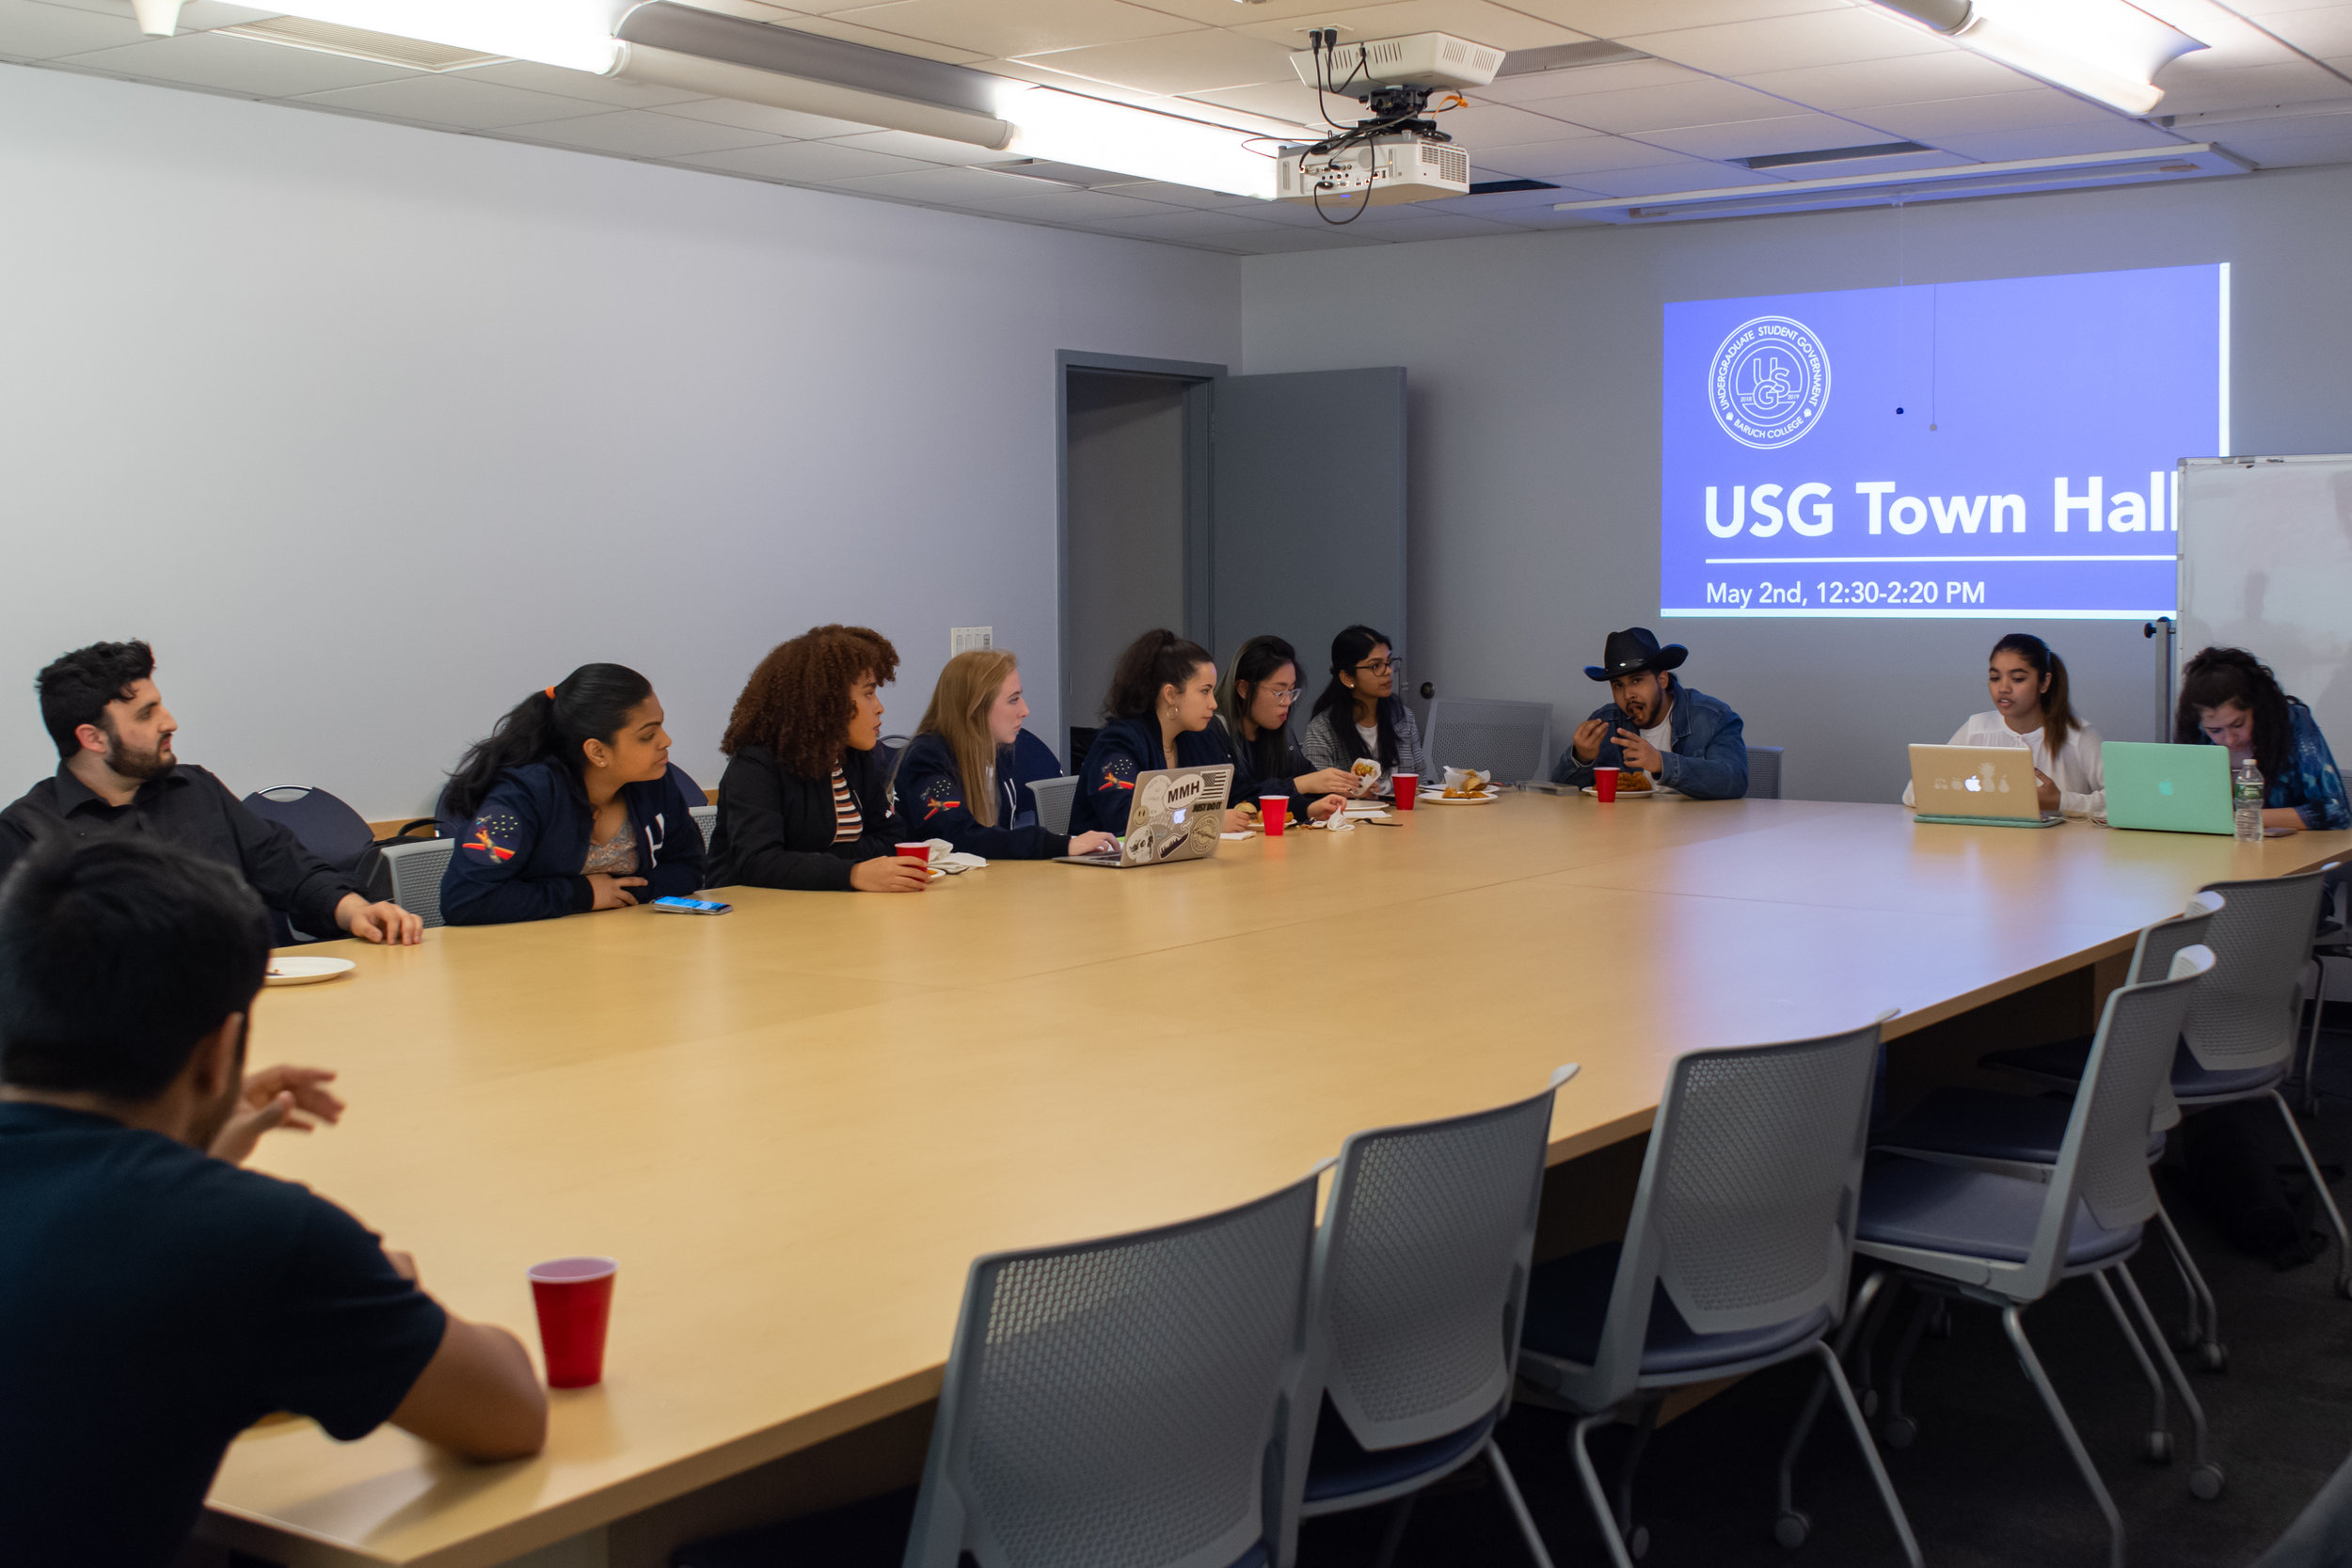 Jabir Rahman | The Ticker   Members of the current USG answered   The Ticker'  s questions and reflected on their past experiences in a Town Hall event held on May 2, despite lack of questions from the student population.